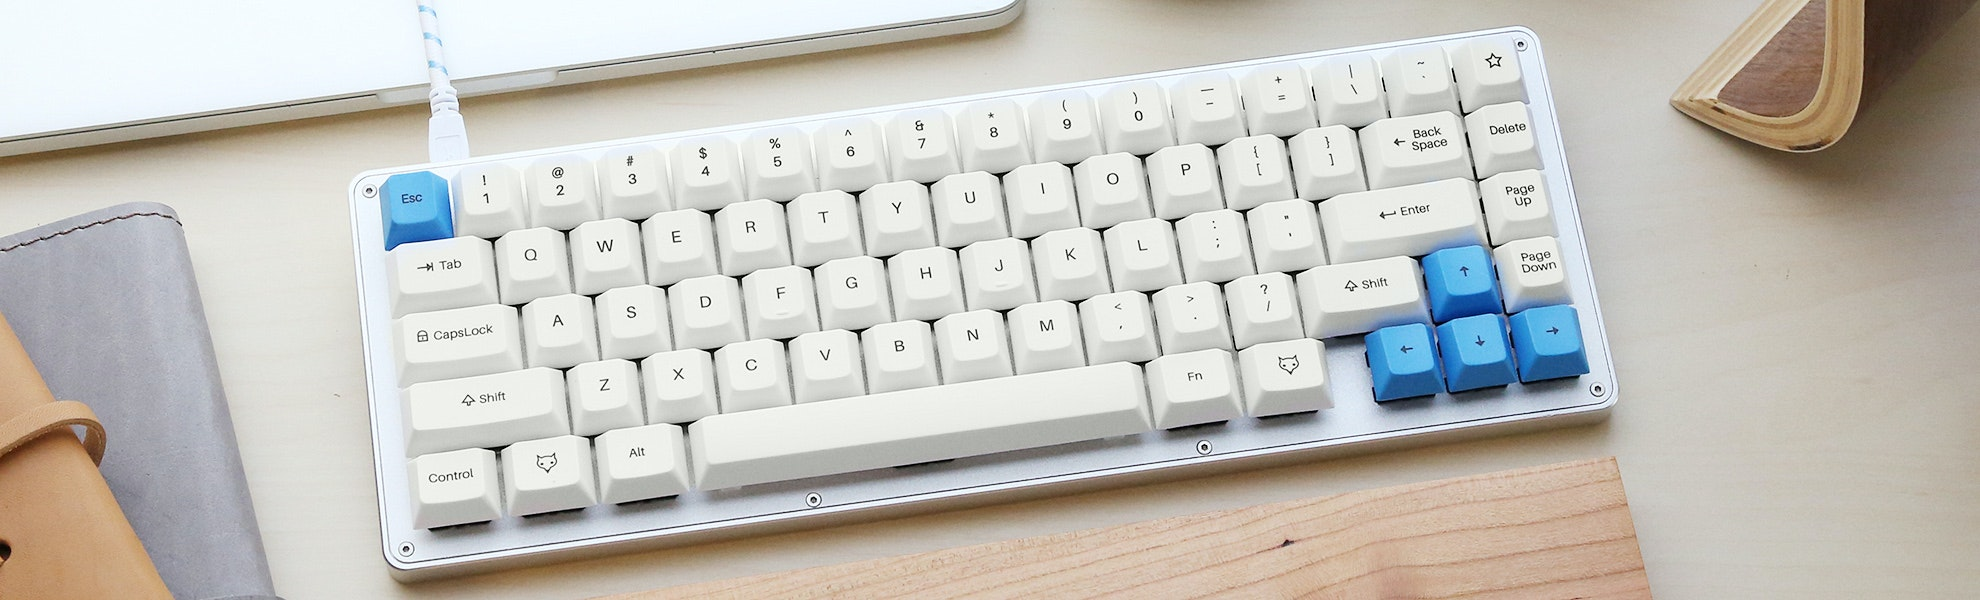 The WhiteFox Keyboard